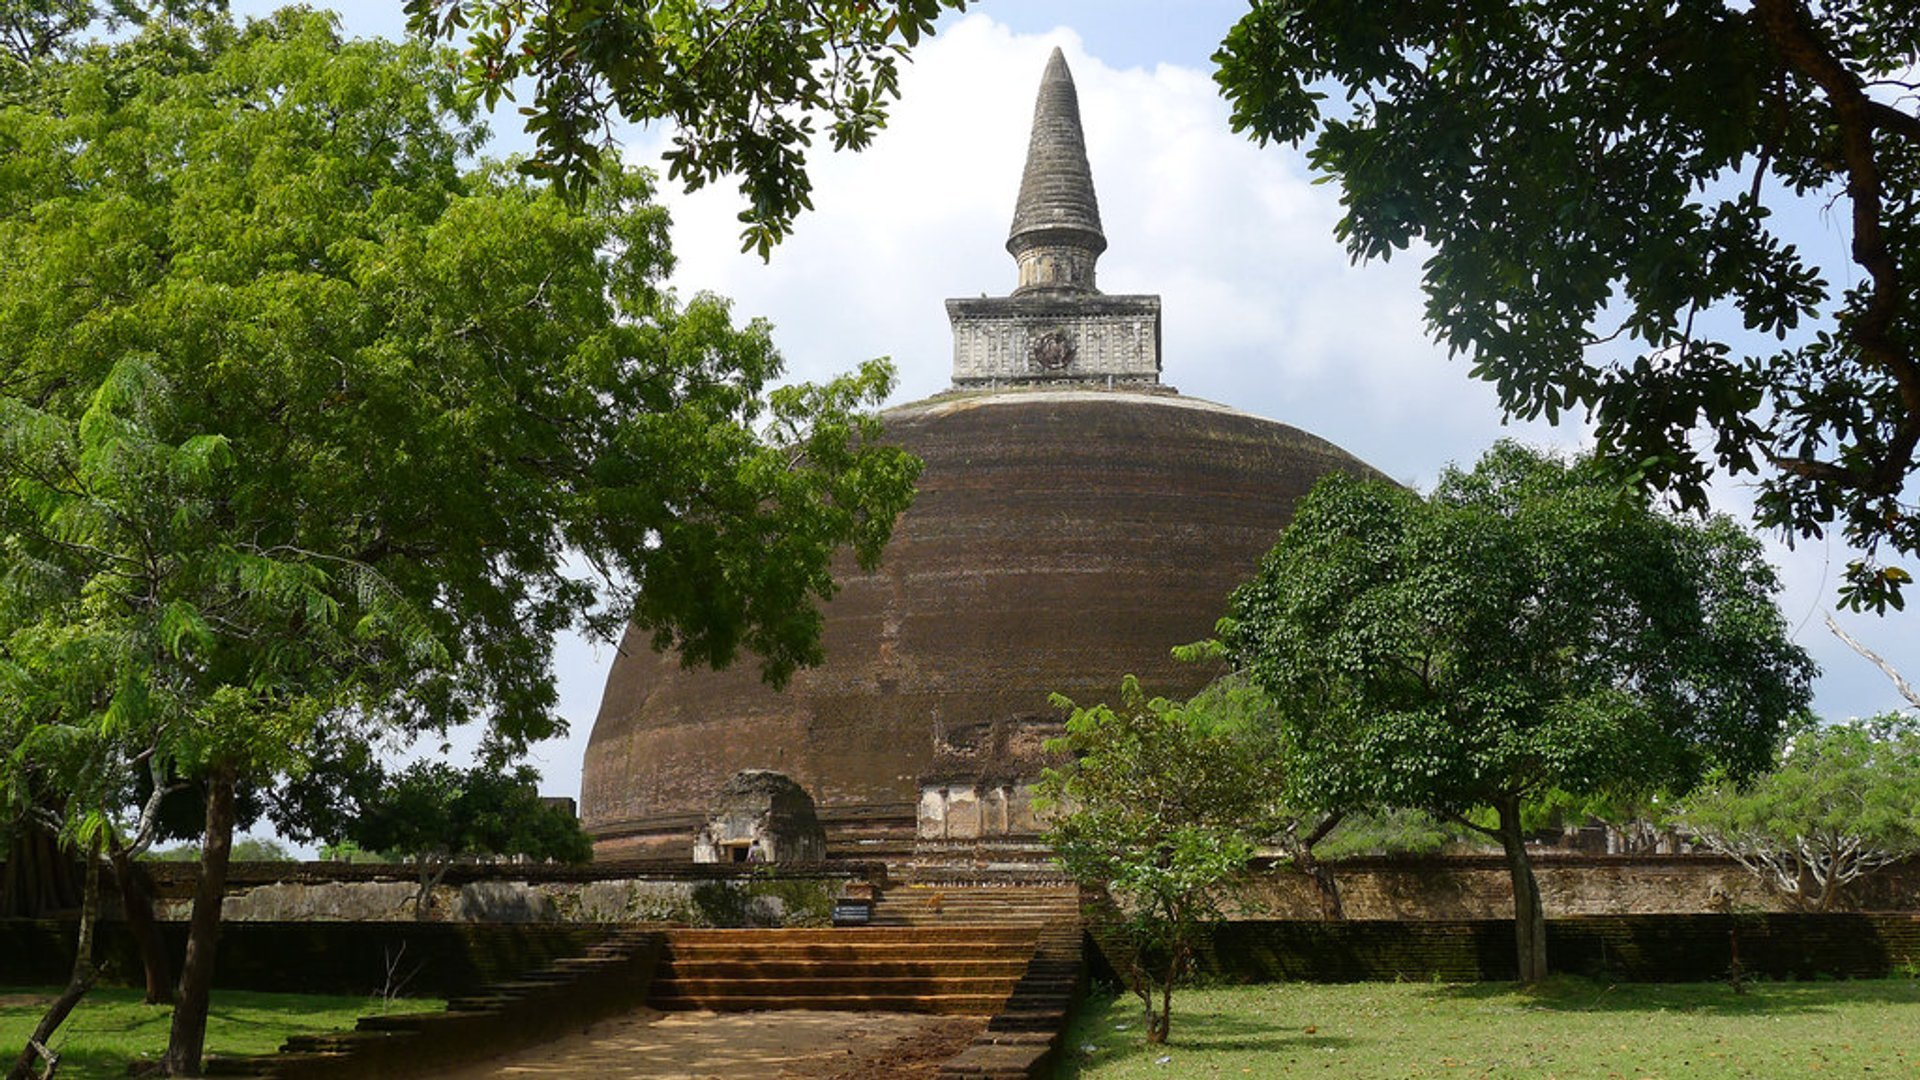 Polonnaruwa in Sri Lanka 2020 - Best Time